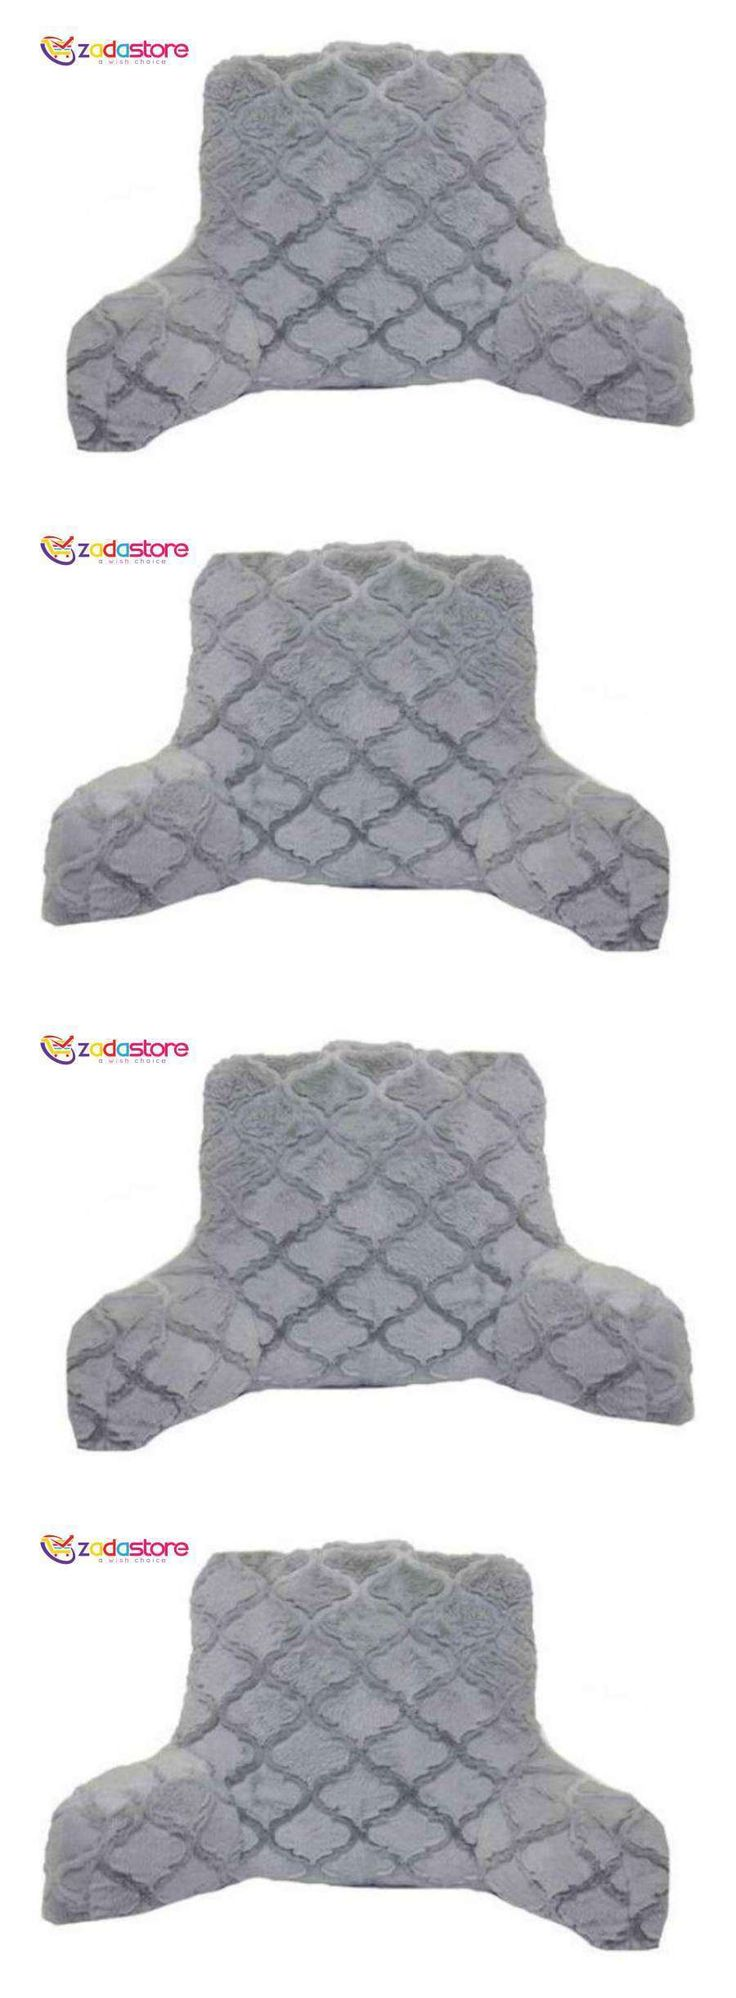 Bed rest pillow walmart - For Walmart Bed Rest Pillow 67 Cool Ideas For Dallas Cowboys Bed Rest Furniture Parts Download